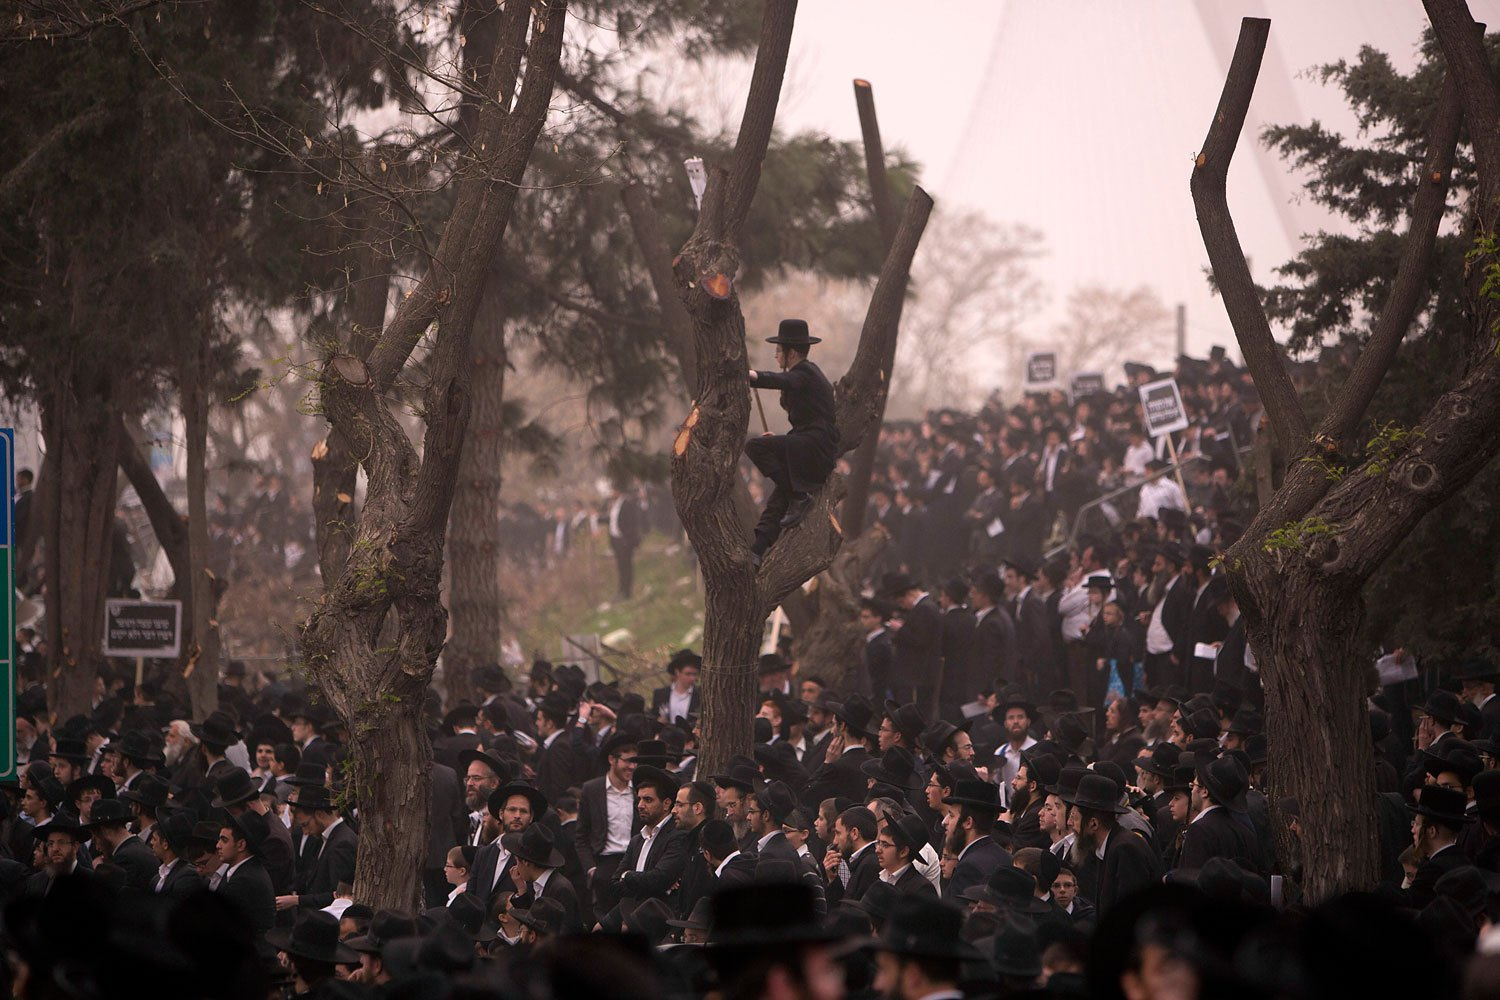 Hundreds of thousands of ultra-Orthodox Jews rally in a massive show of force against plans to force them to serve in the Israeli military, blocking roads and paralyzing the city of Jerusalem, March 2, 2014.